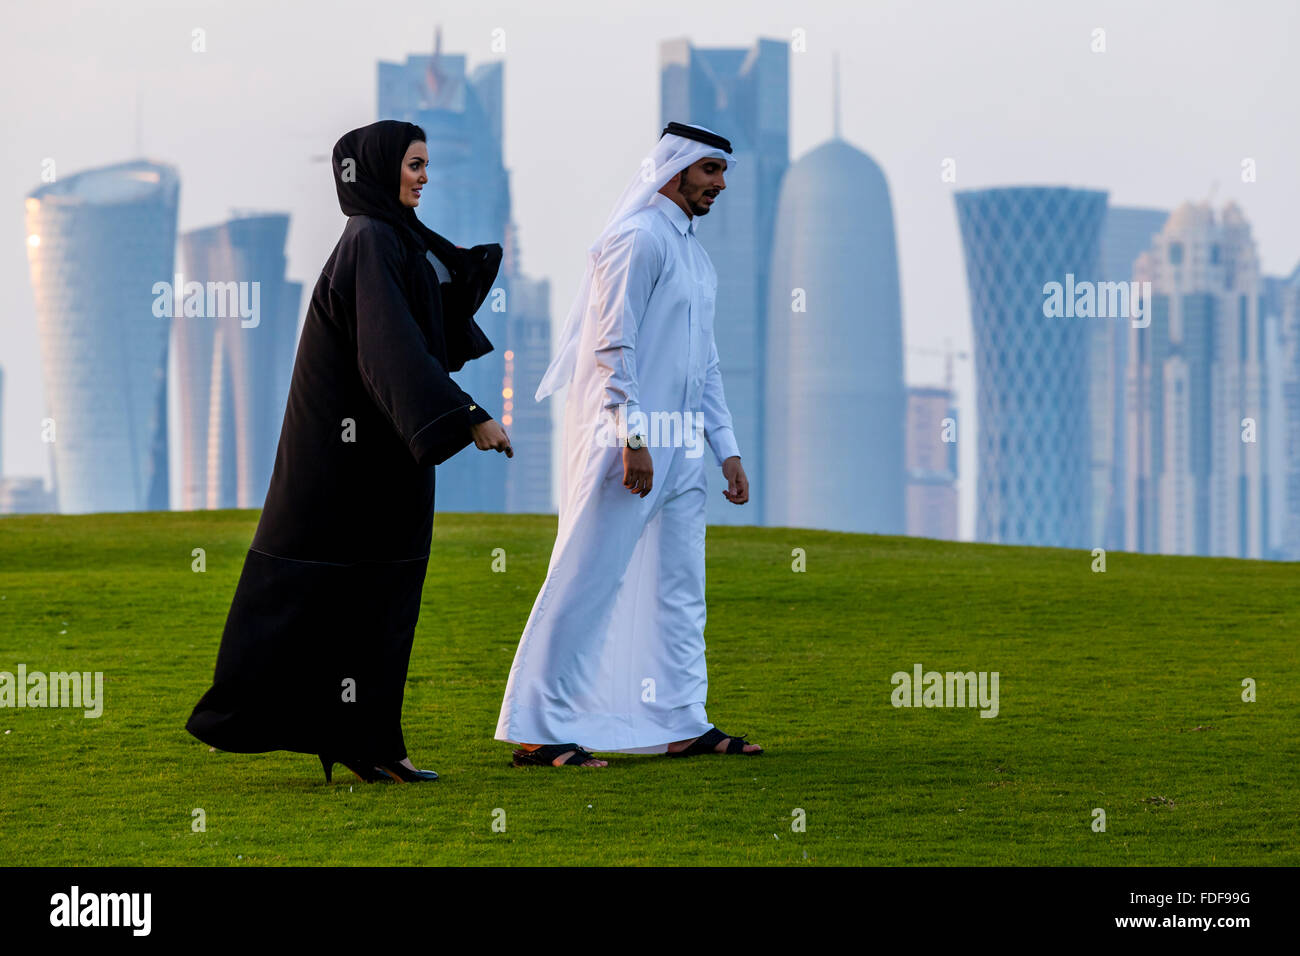 Qatar Doha Man Stock Photos & Qatar Doha Man Stock Images ...